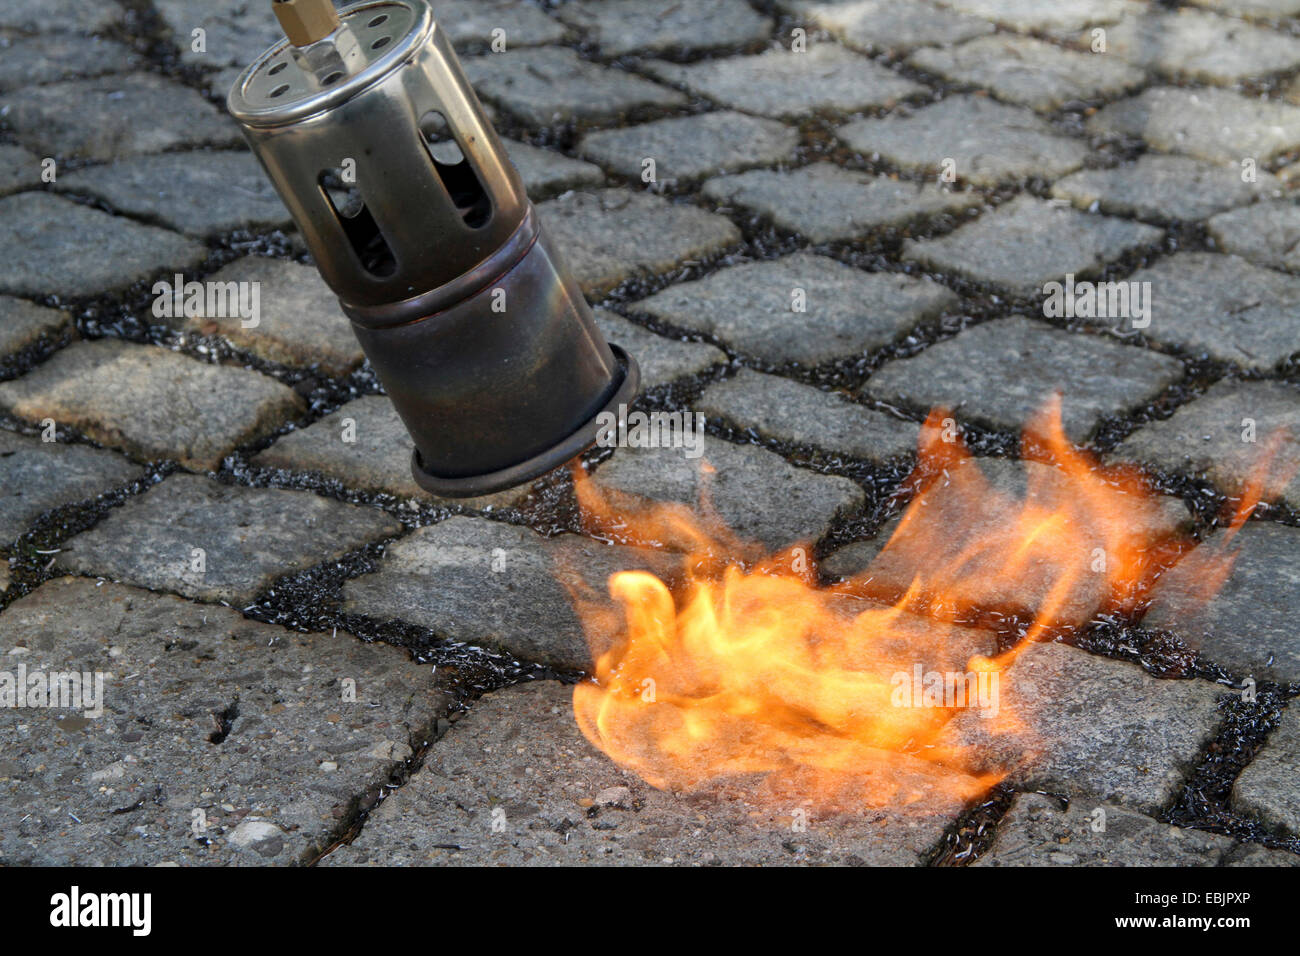 removing weeds from the gaps of a paved path by a gas flame, Germany, Nordrhein Westfalen, Ruhr Area, Essen - Stock Image